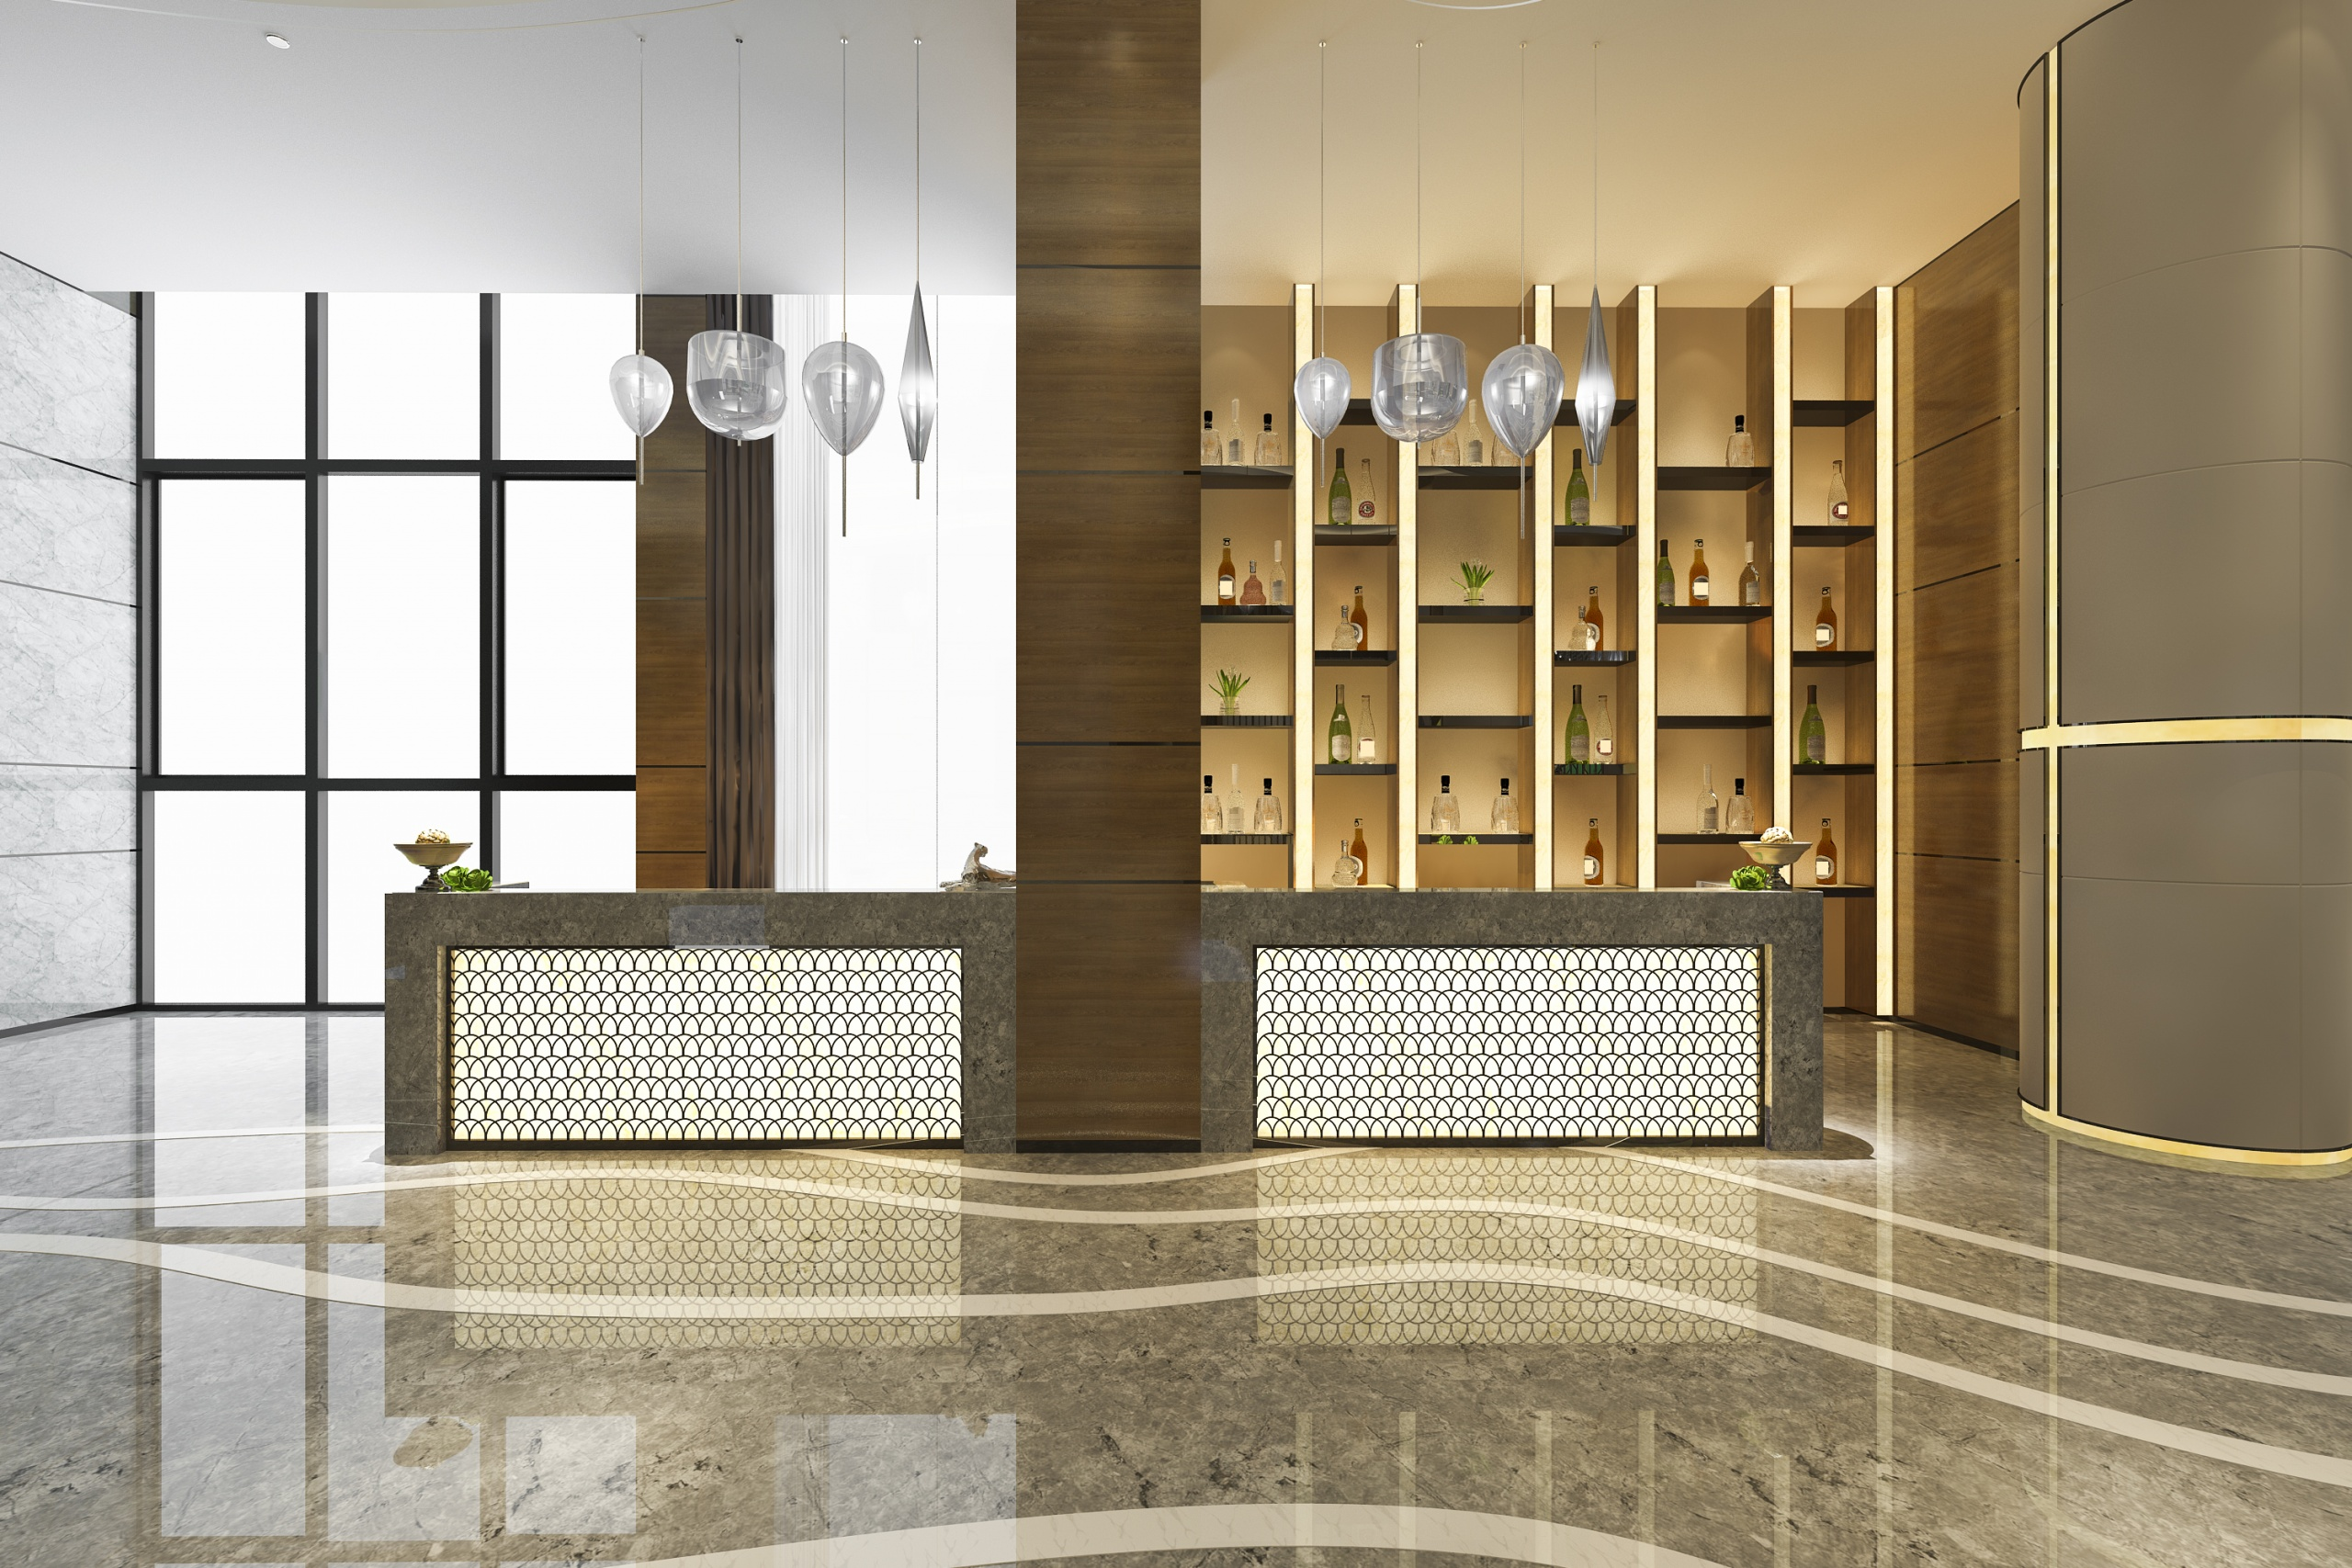 How to Make Marble Floors Shiny and Clean | Sydney Tile & Stone Care